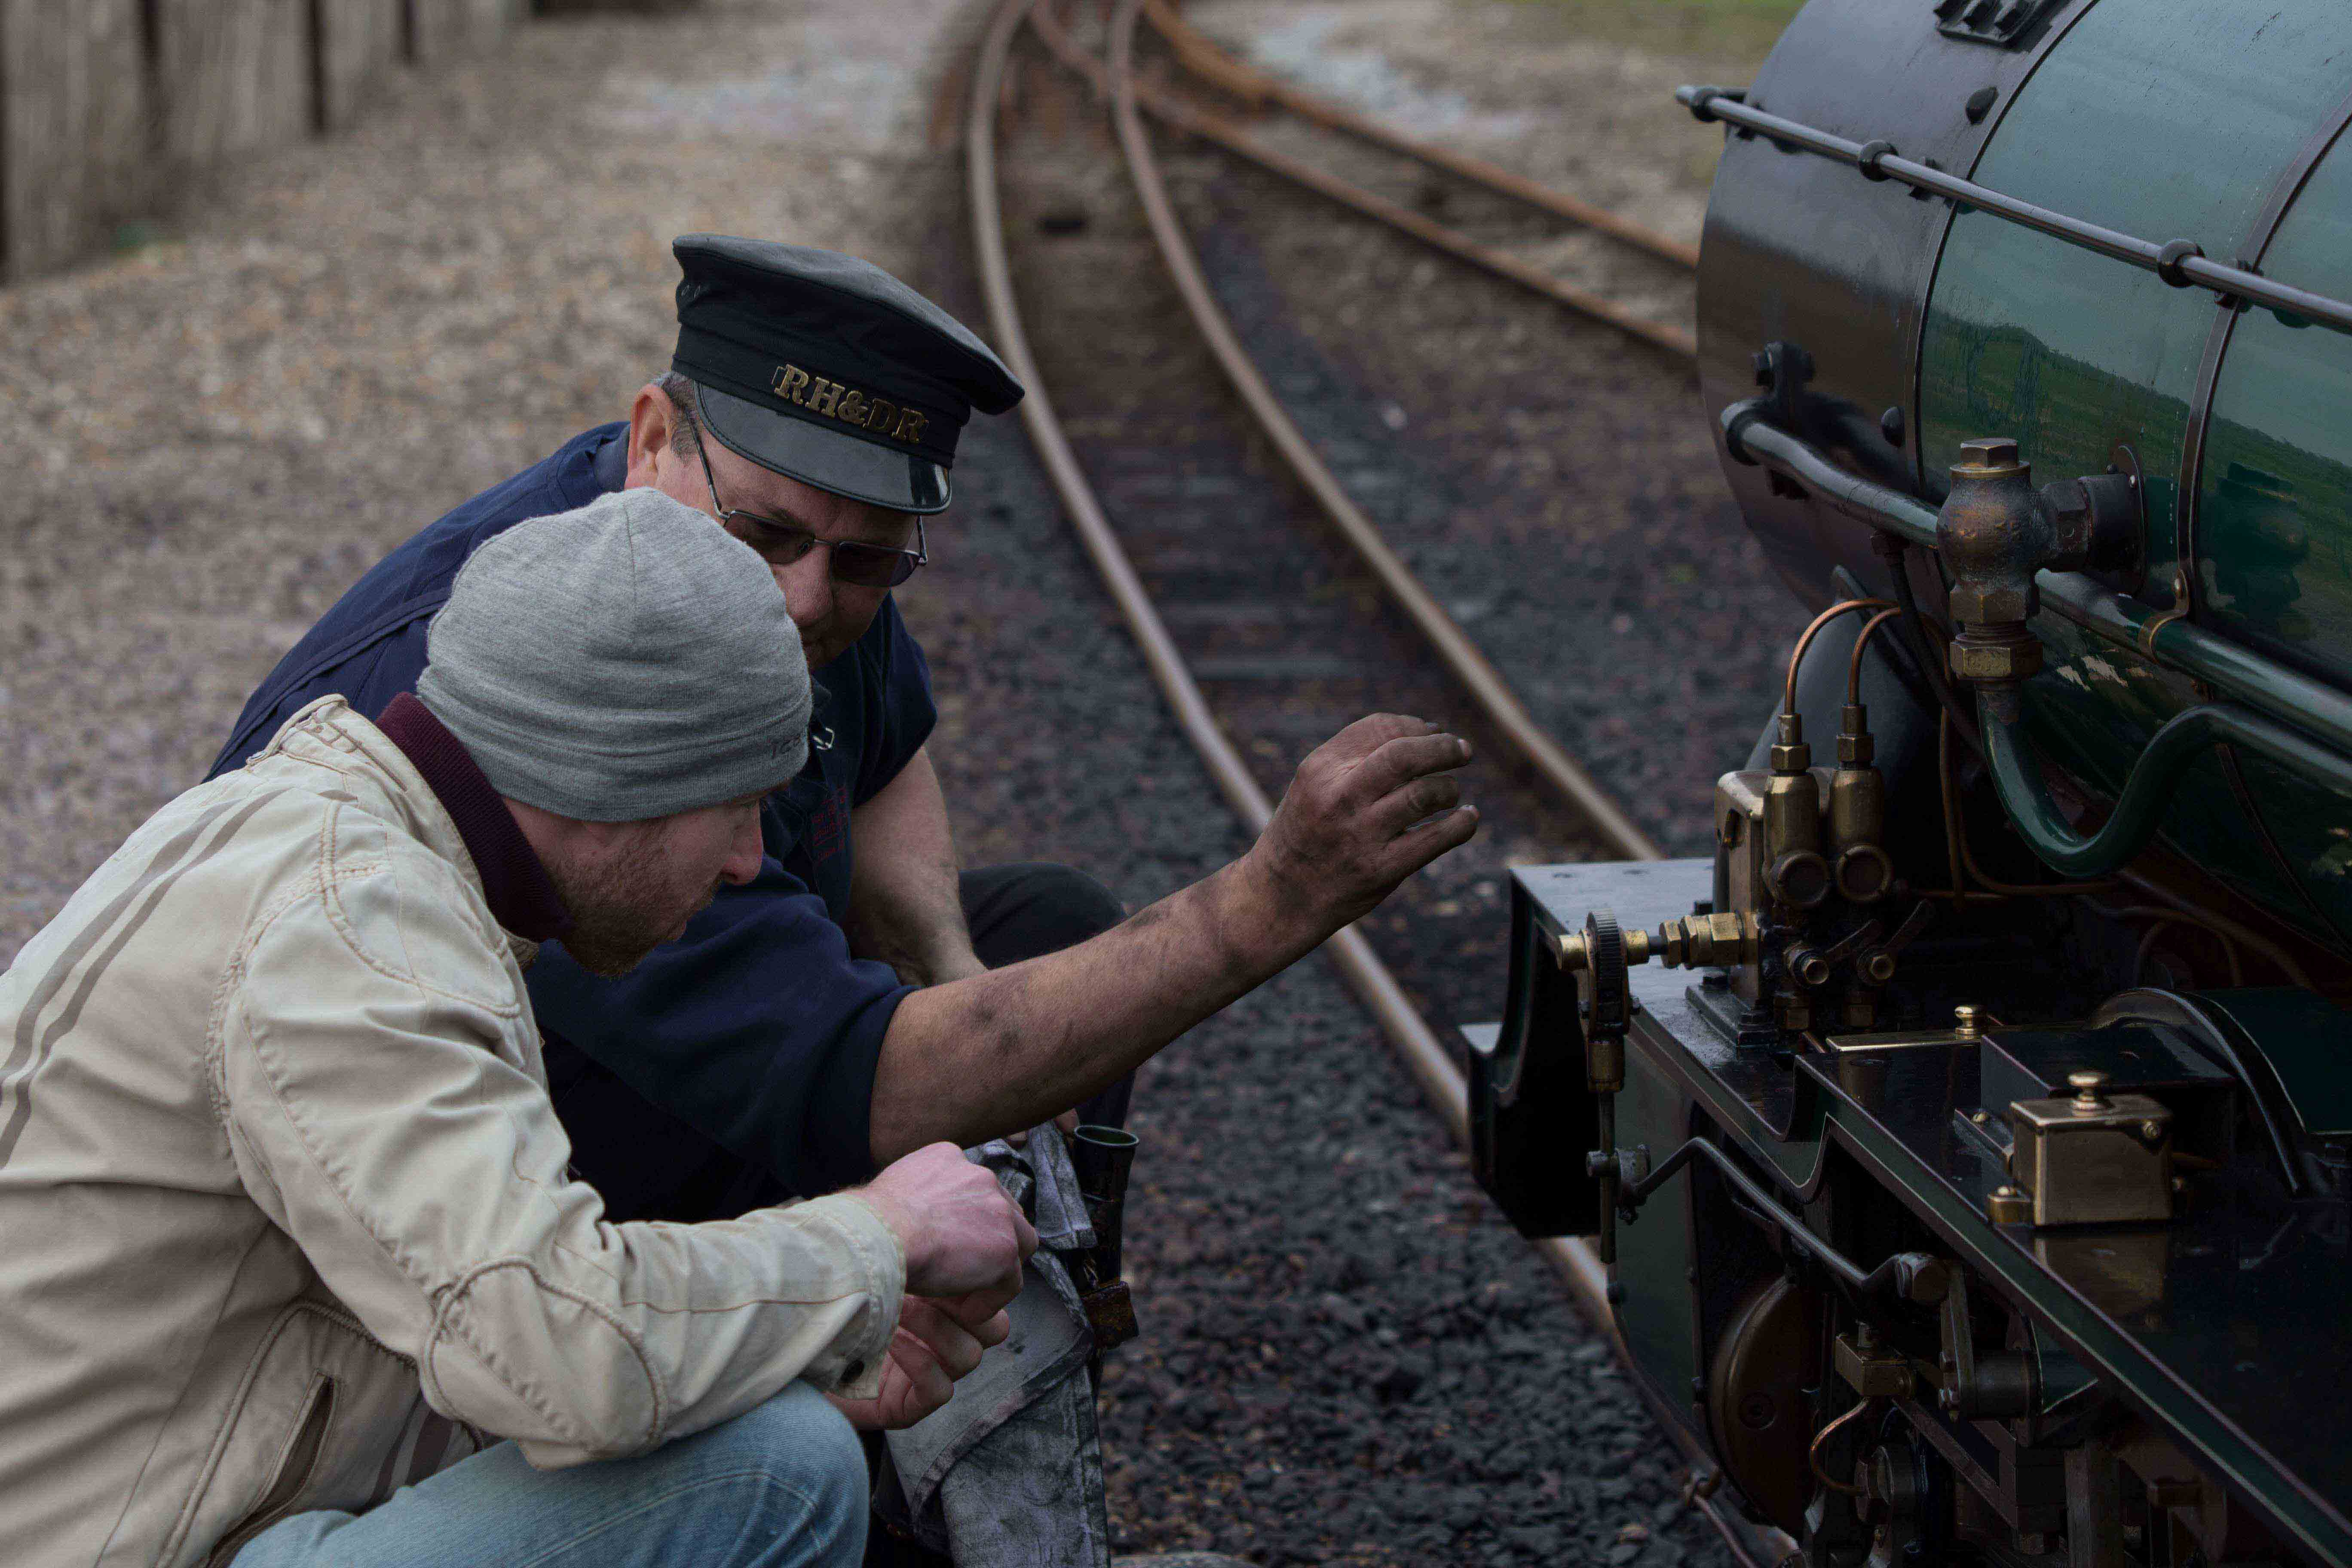 Explaining how a steam locomotive works